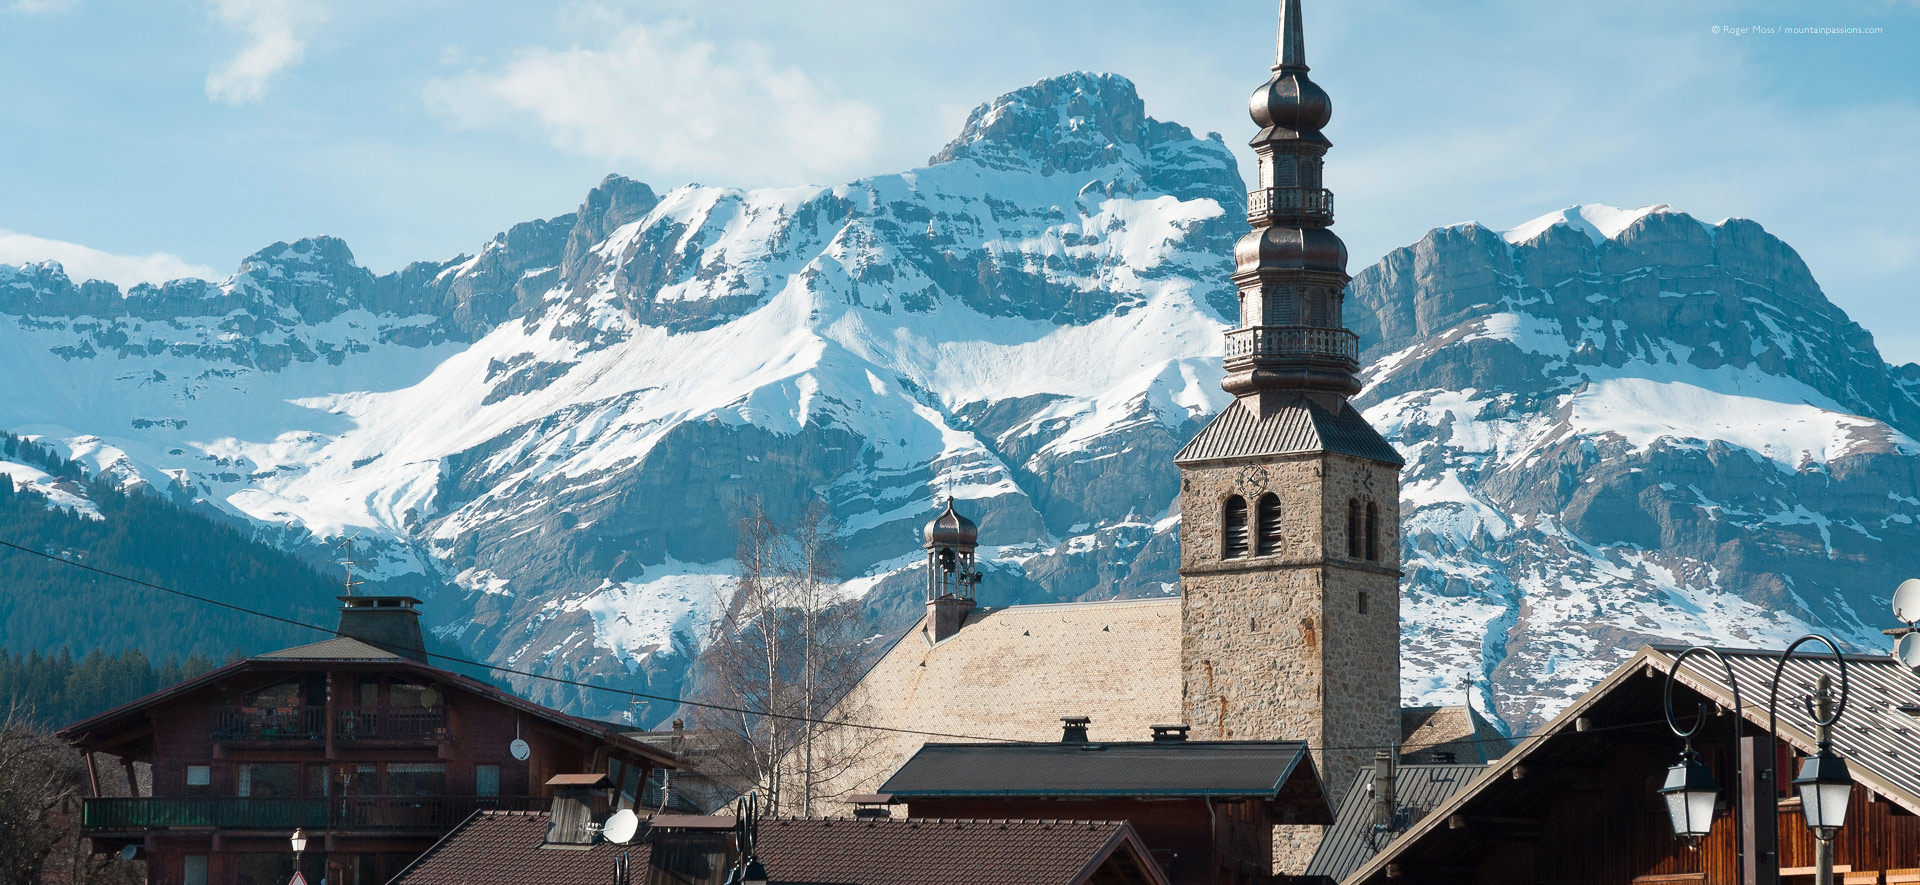 Chalet rooftops and village church at Combloux, with Mont Blanc in background.